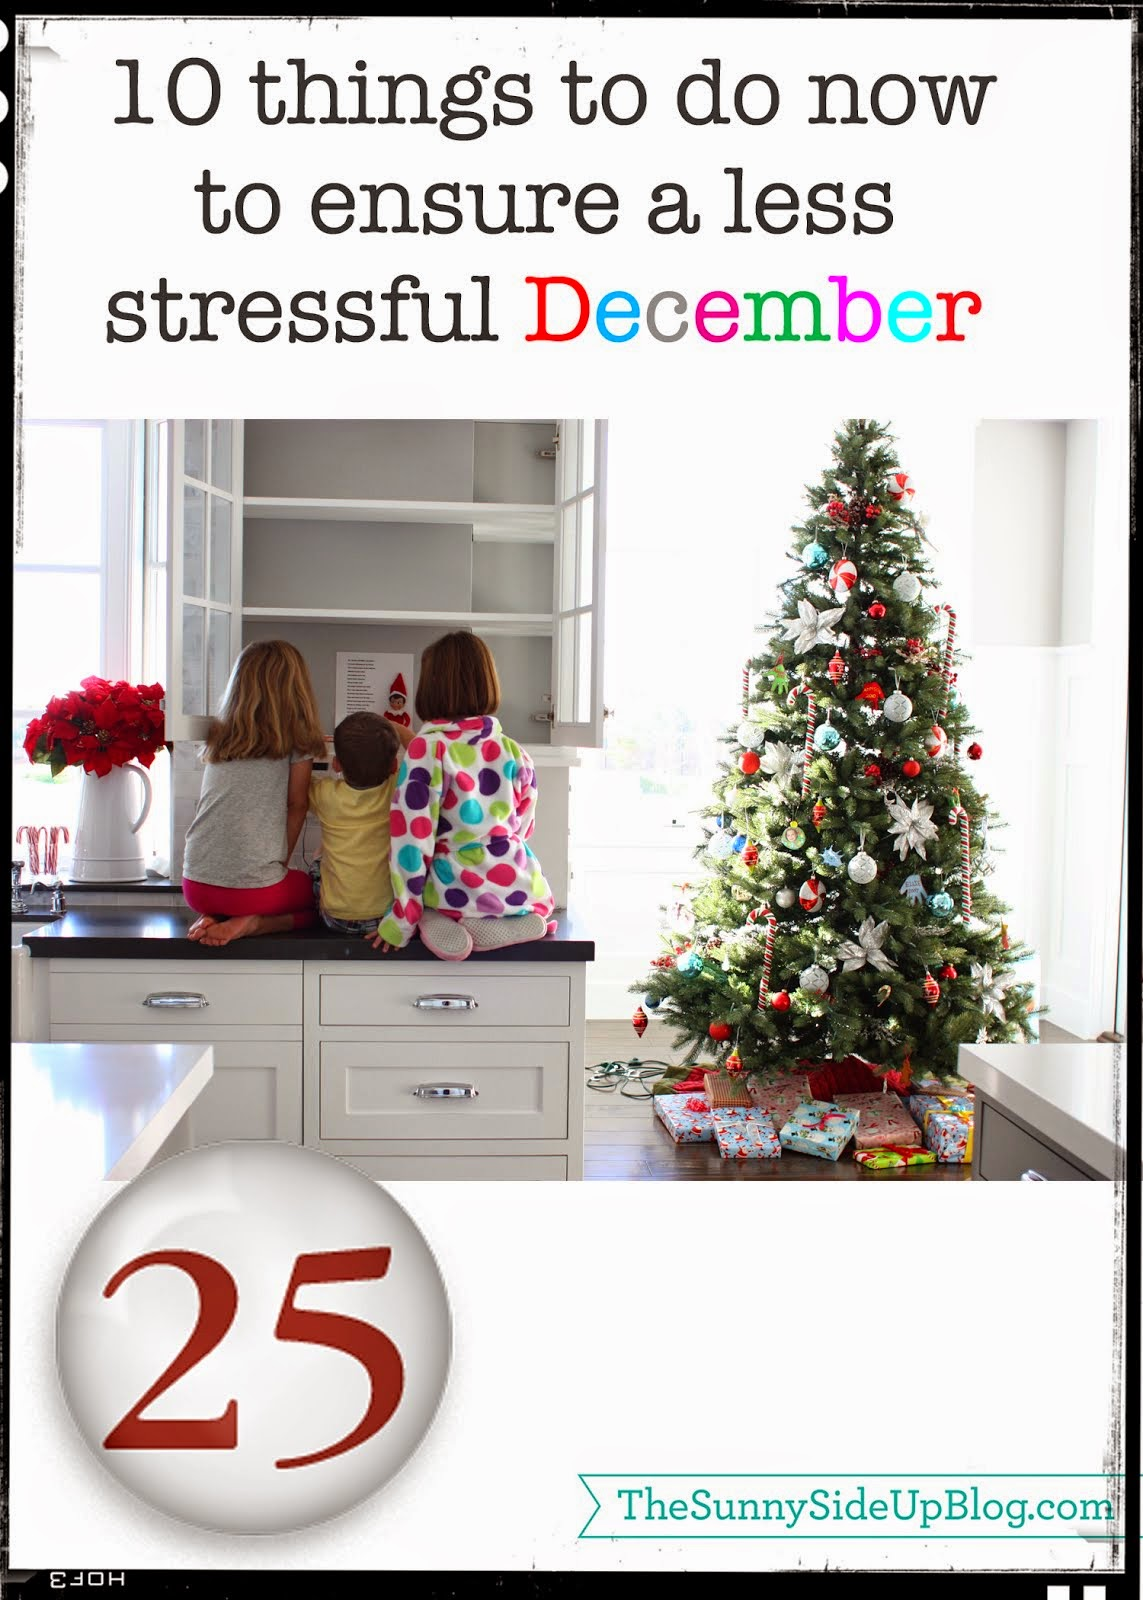 Tips to ensure a less stressful December